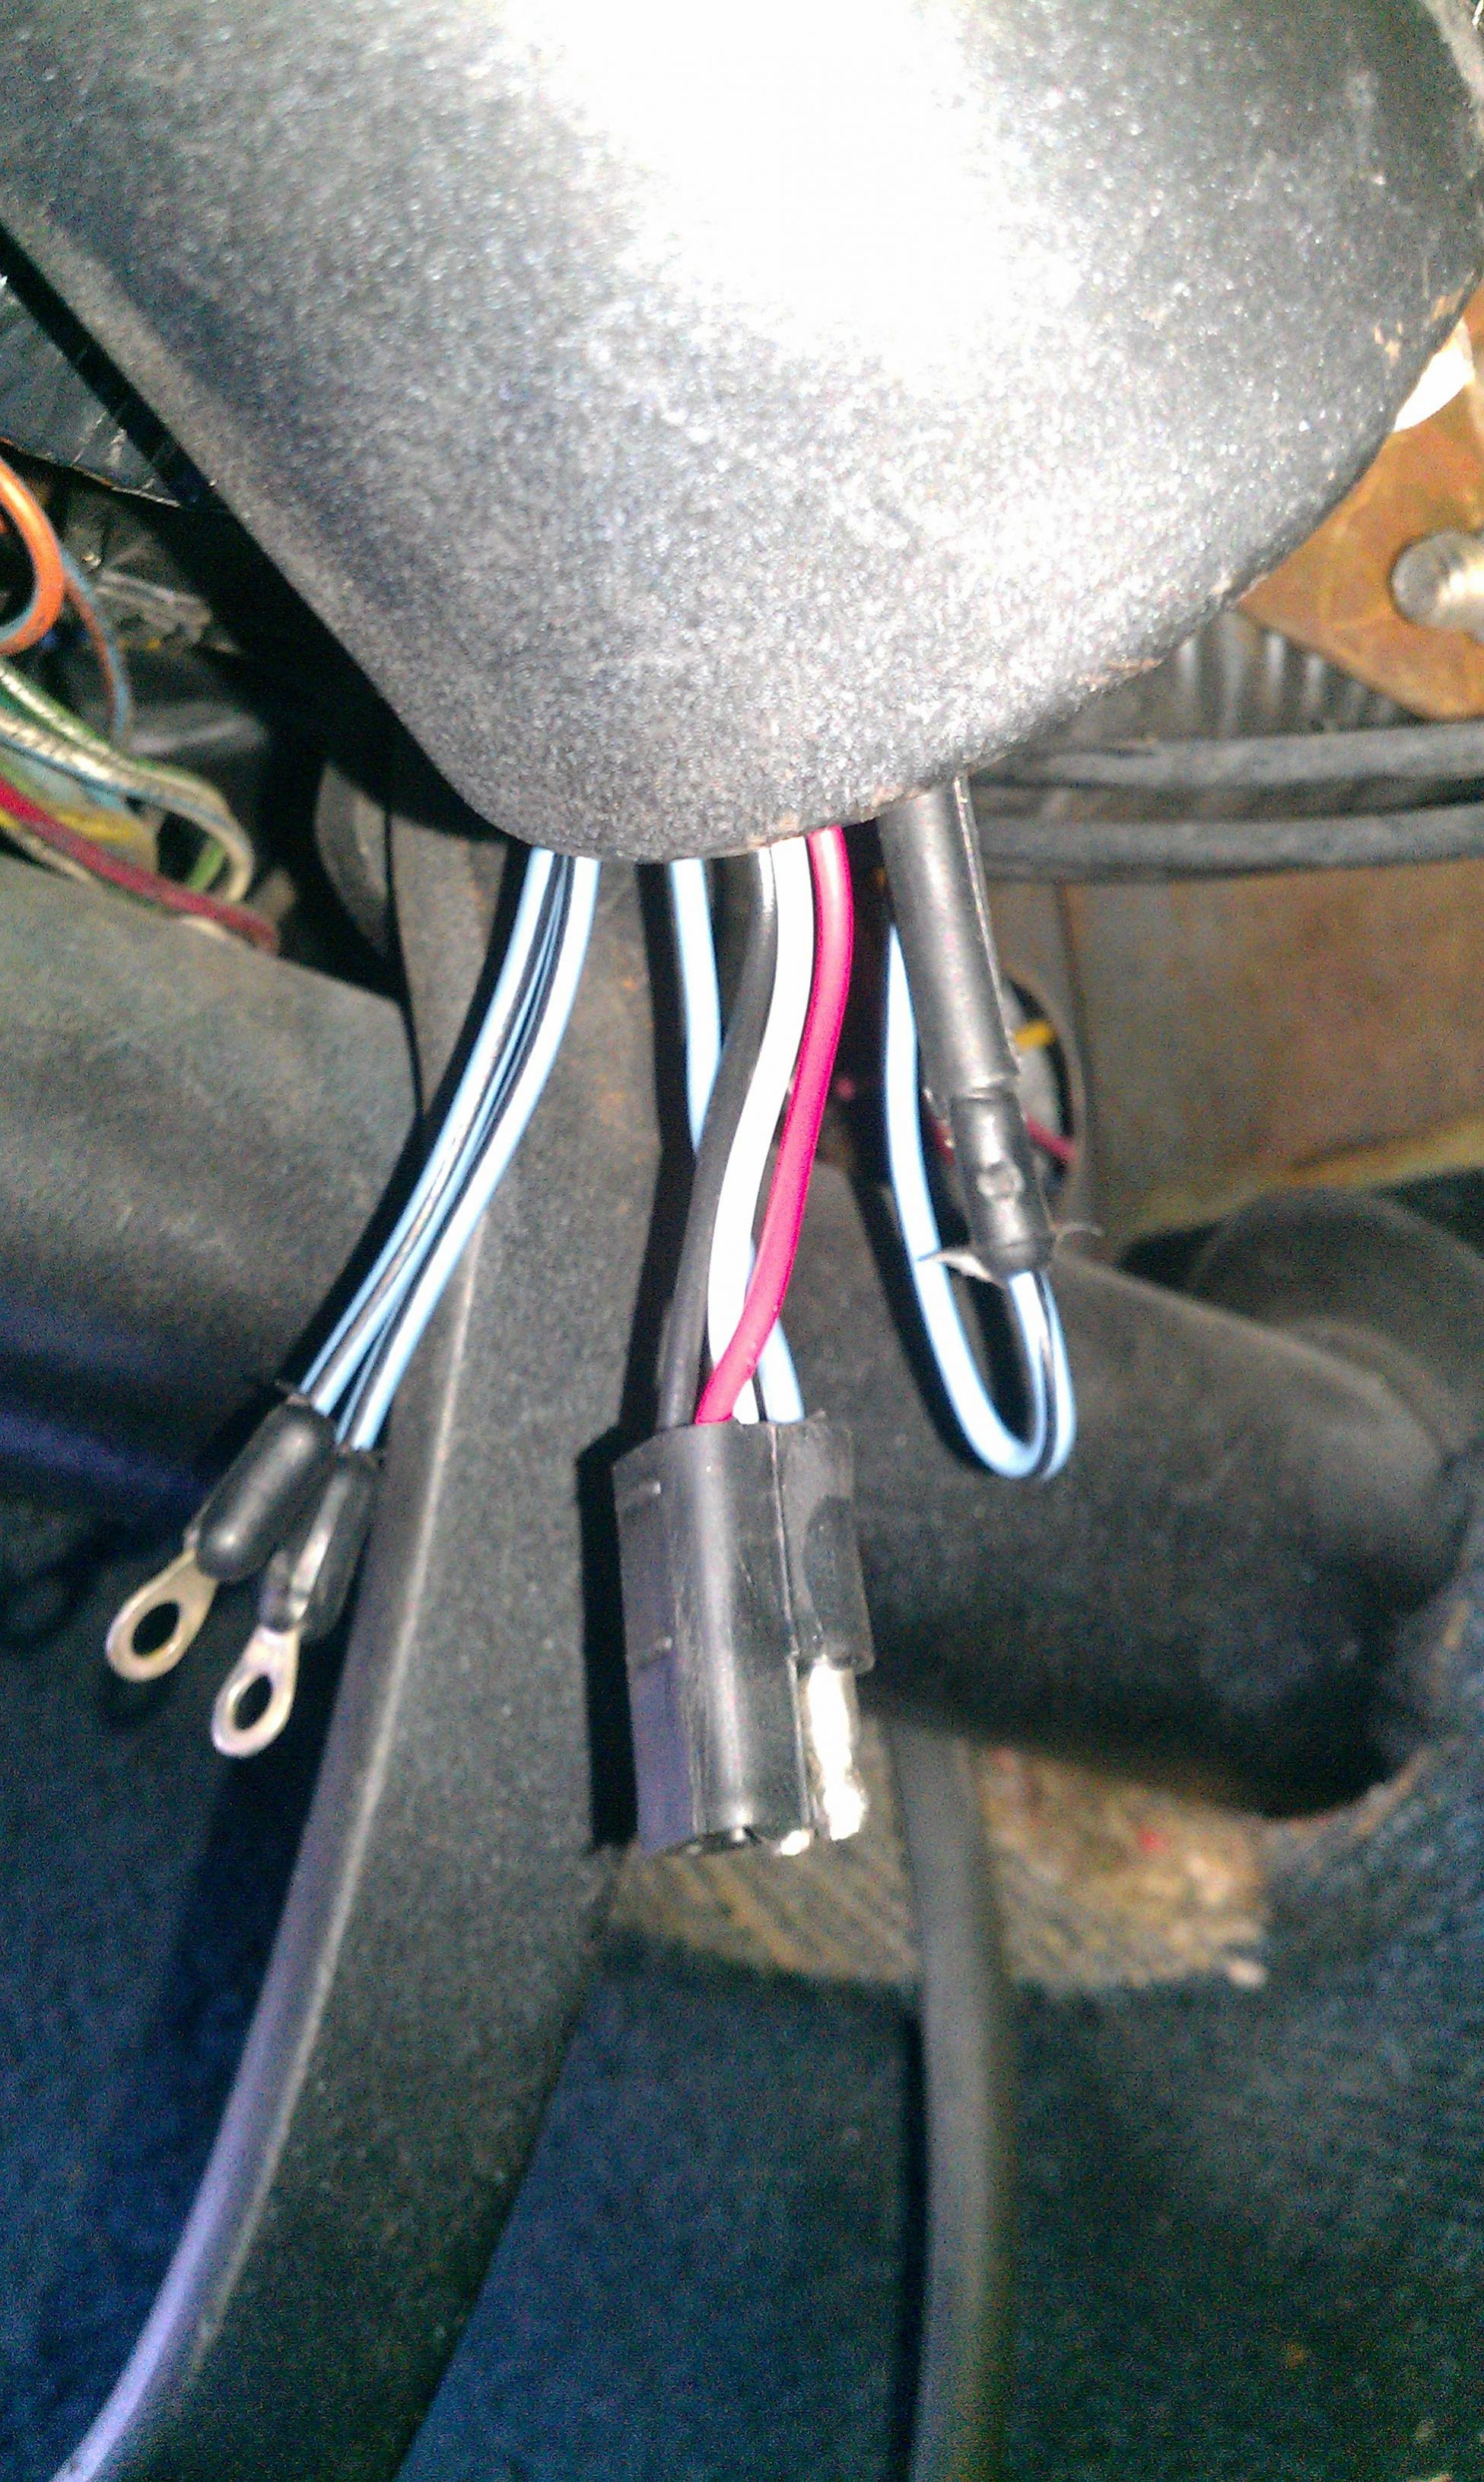 Need Assistance In Identifying Under Dash Wire Harness